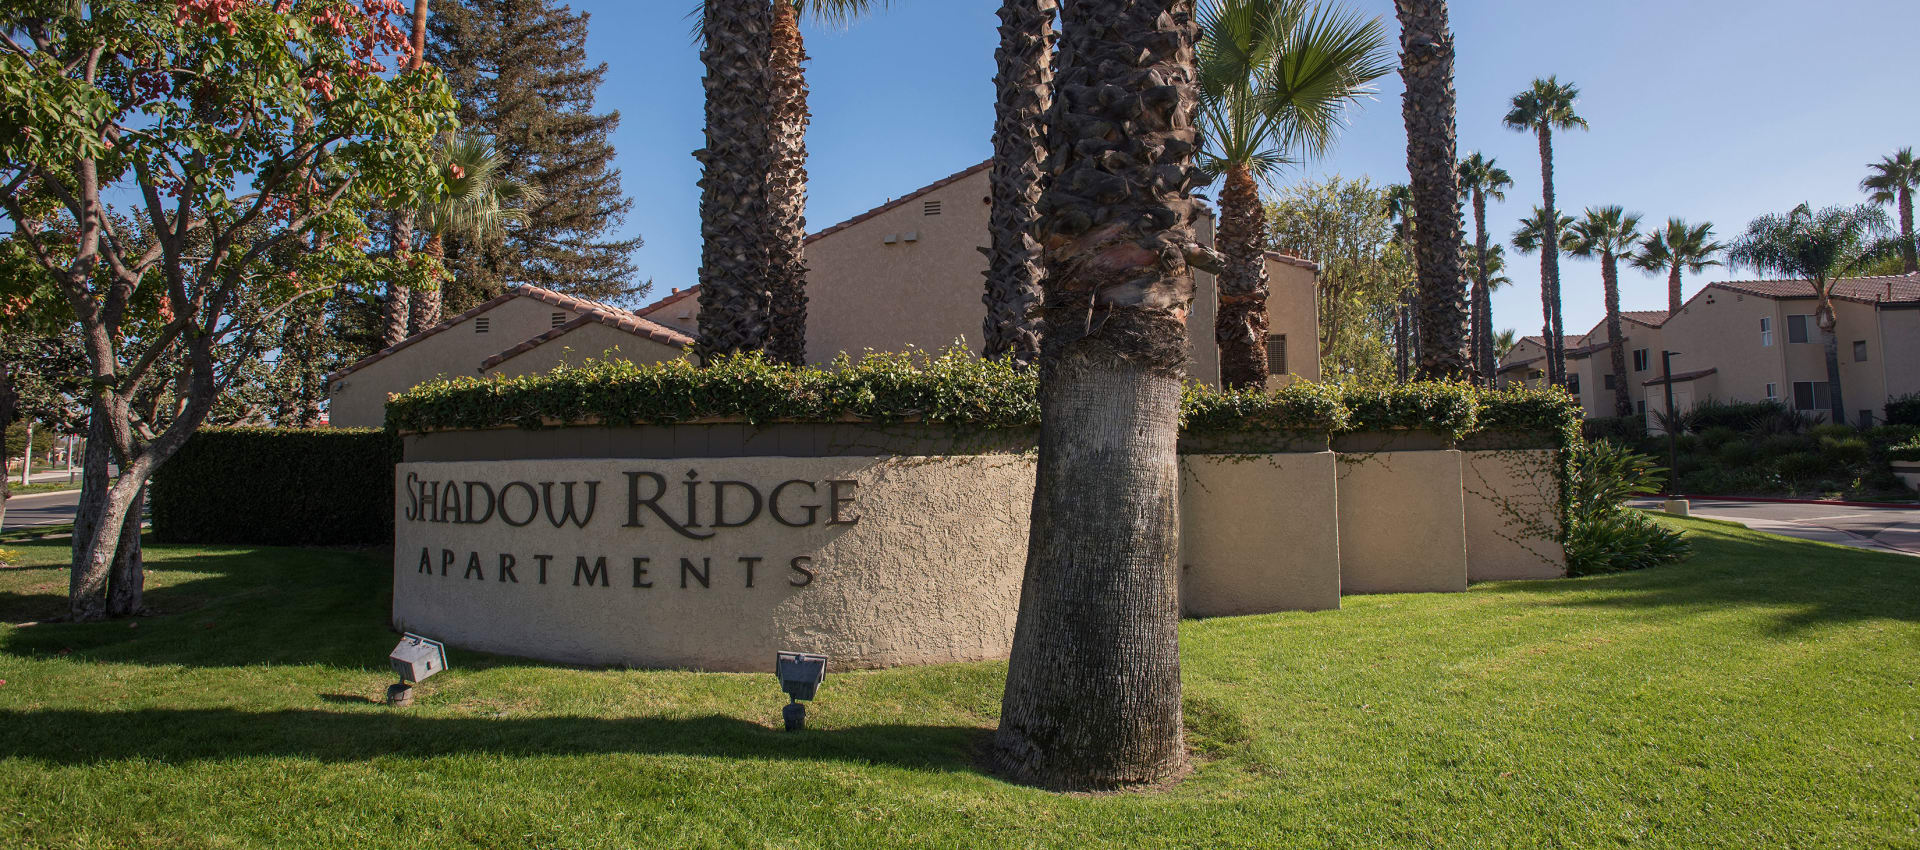 Front sign at Shadow Ridge Apartment Homes in Simi Valley, California